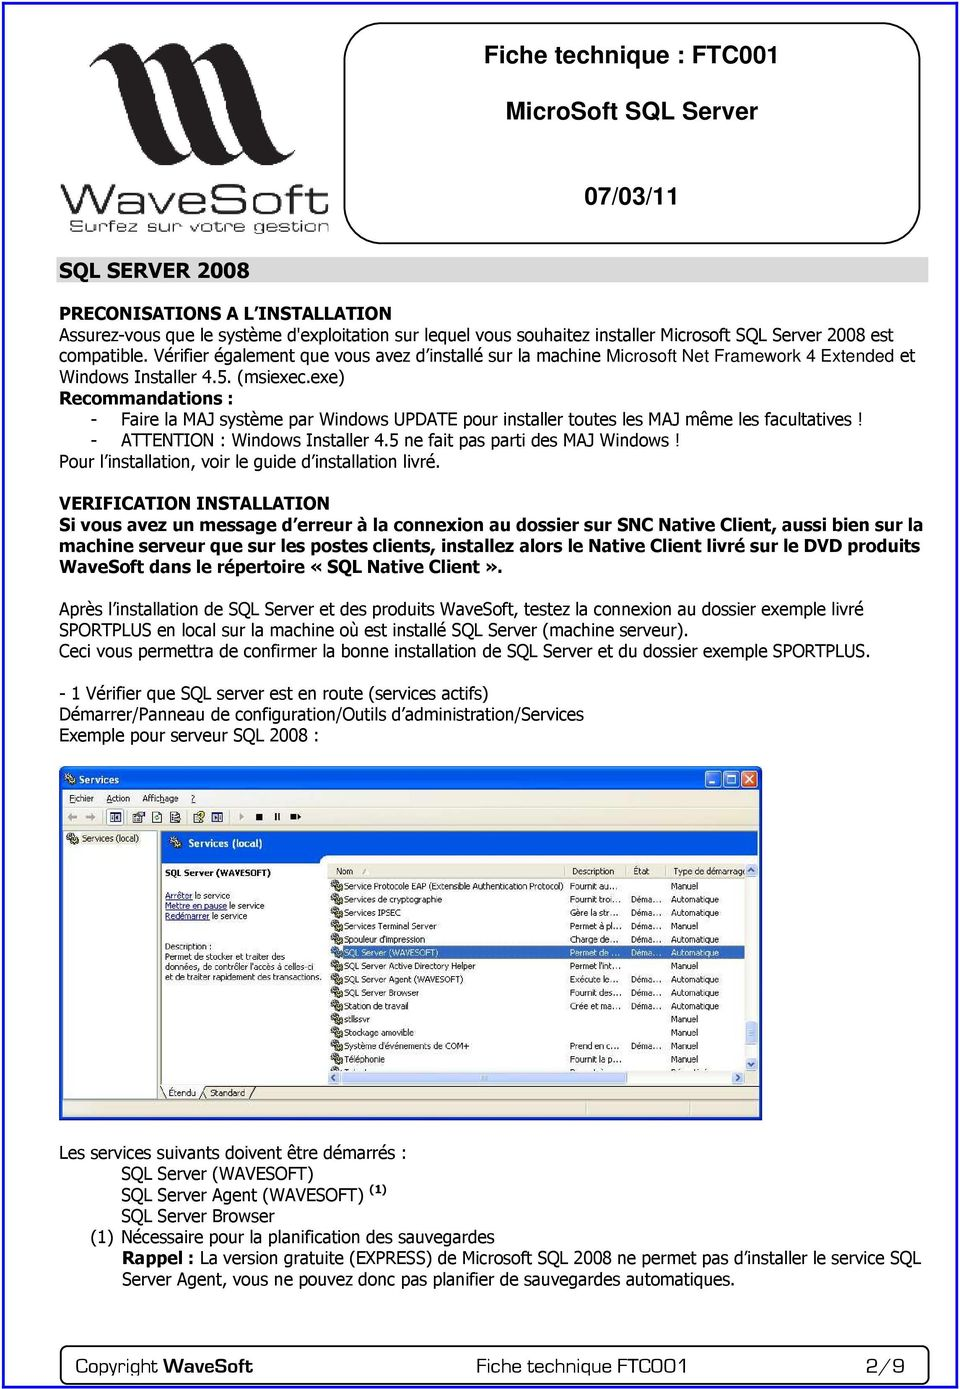 exe) Recommandations : - Faire la MAJ système par Windows UPDATE pour installer toutes les MAJ même les facultatives! - ATTENTION : Windows Installer 4.5 ne fait pas parti des MAJ Windows!